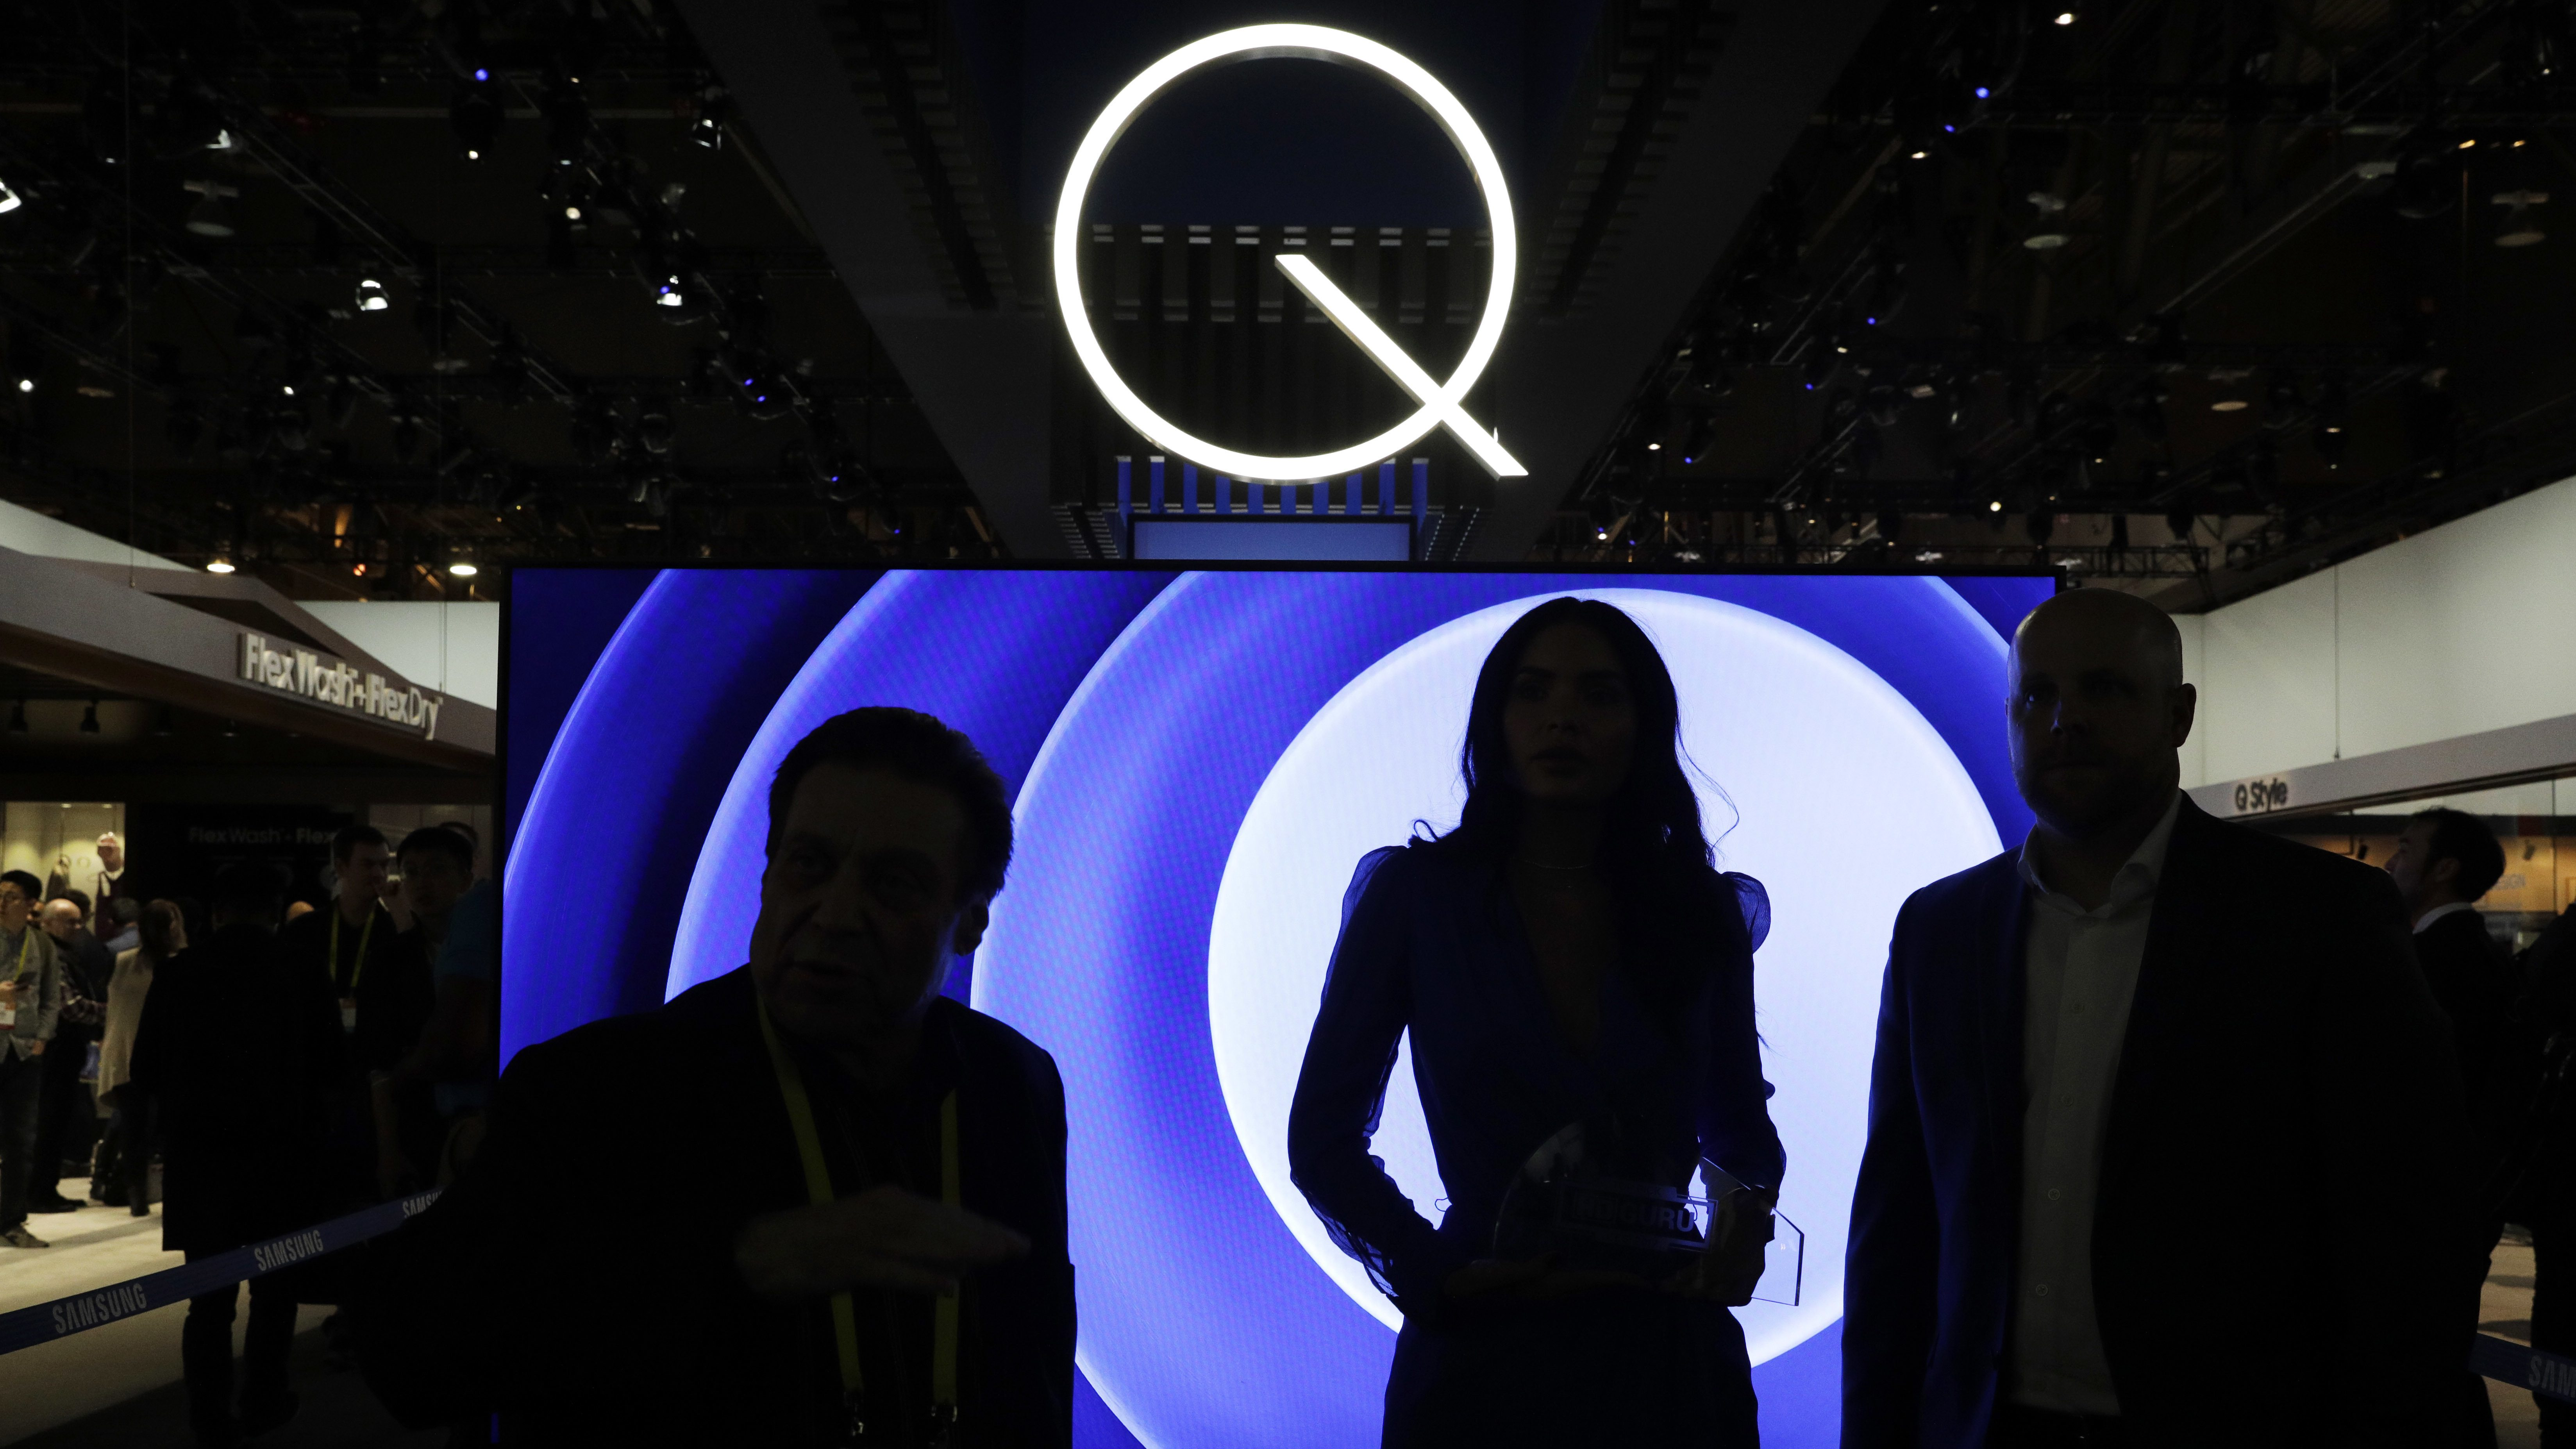 Attendees stand in front of a QLED TV at the Samsung booth during CES International, Friday, Jan. 6, 2017, in Las Vegas. (AP Photo/John Locher)